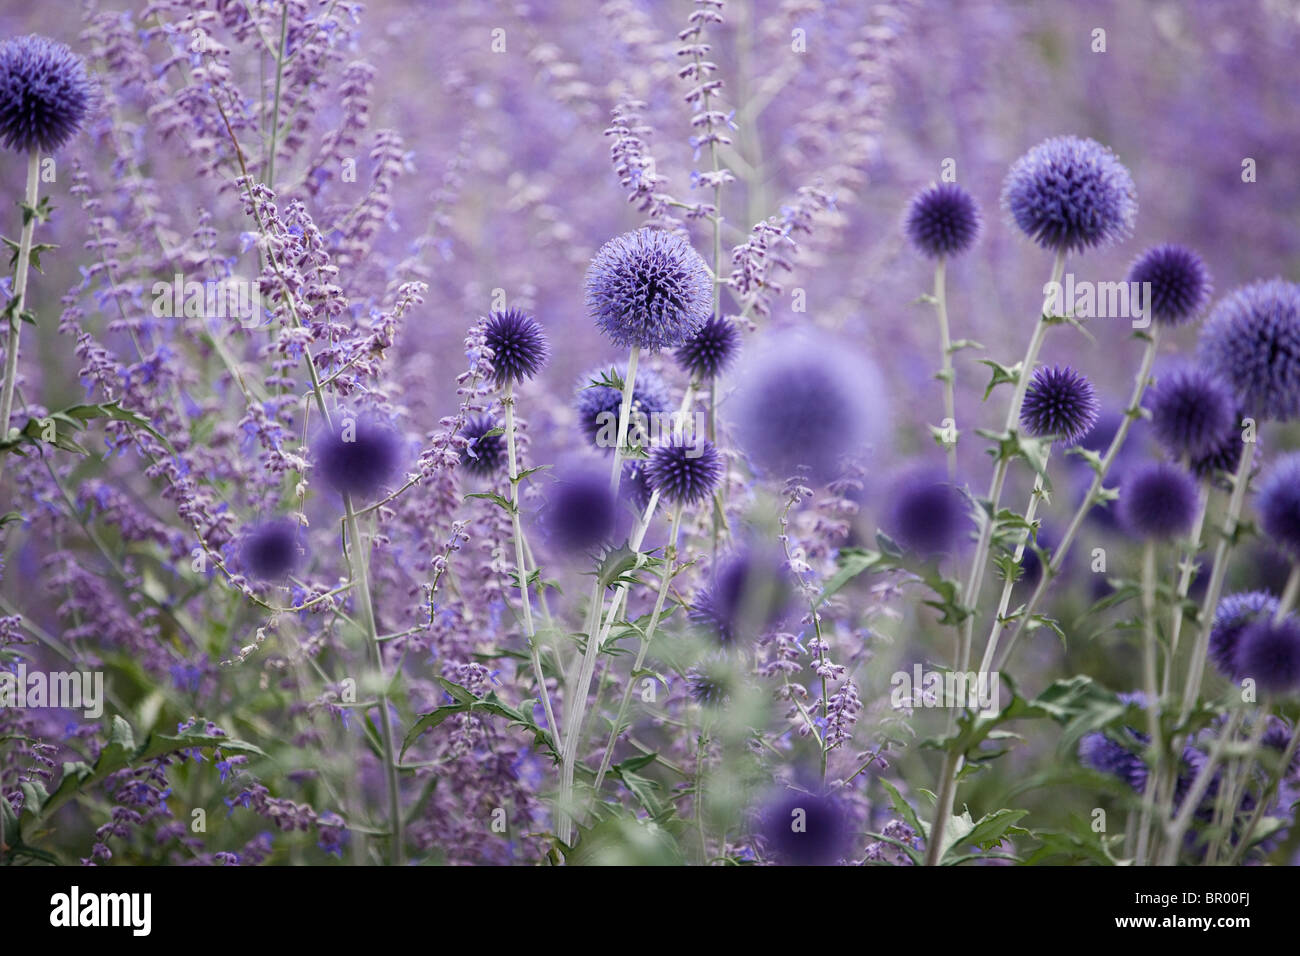 Purple globe thistles and lavender - Stock Image